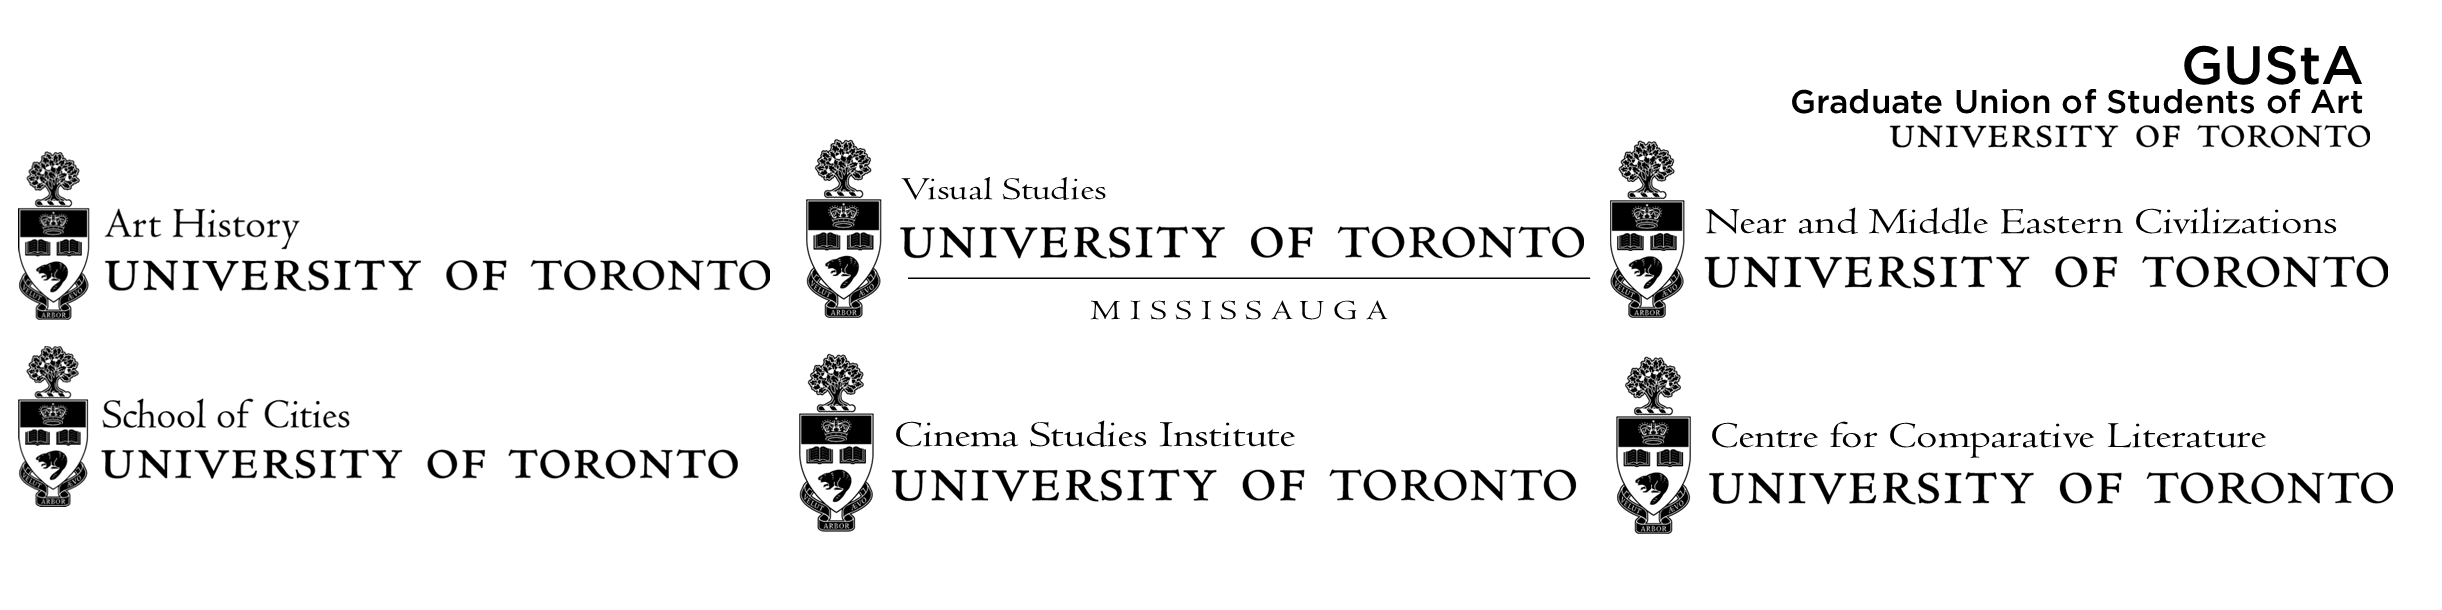 Logos showing the list of departments sponsoring this symposium.